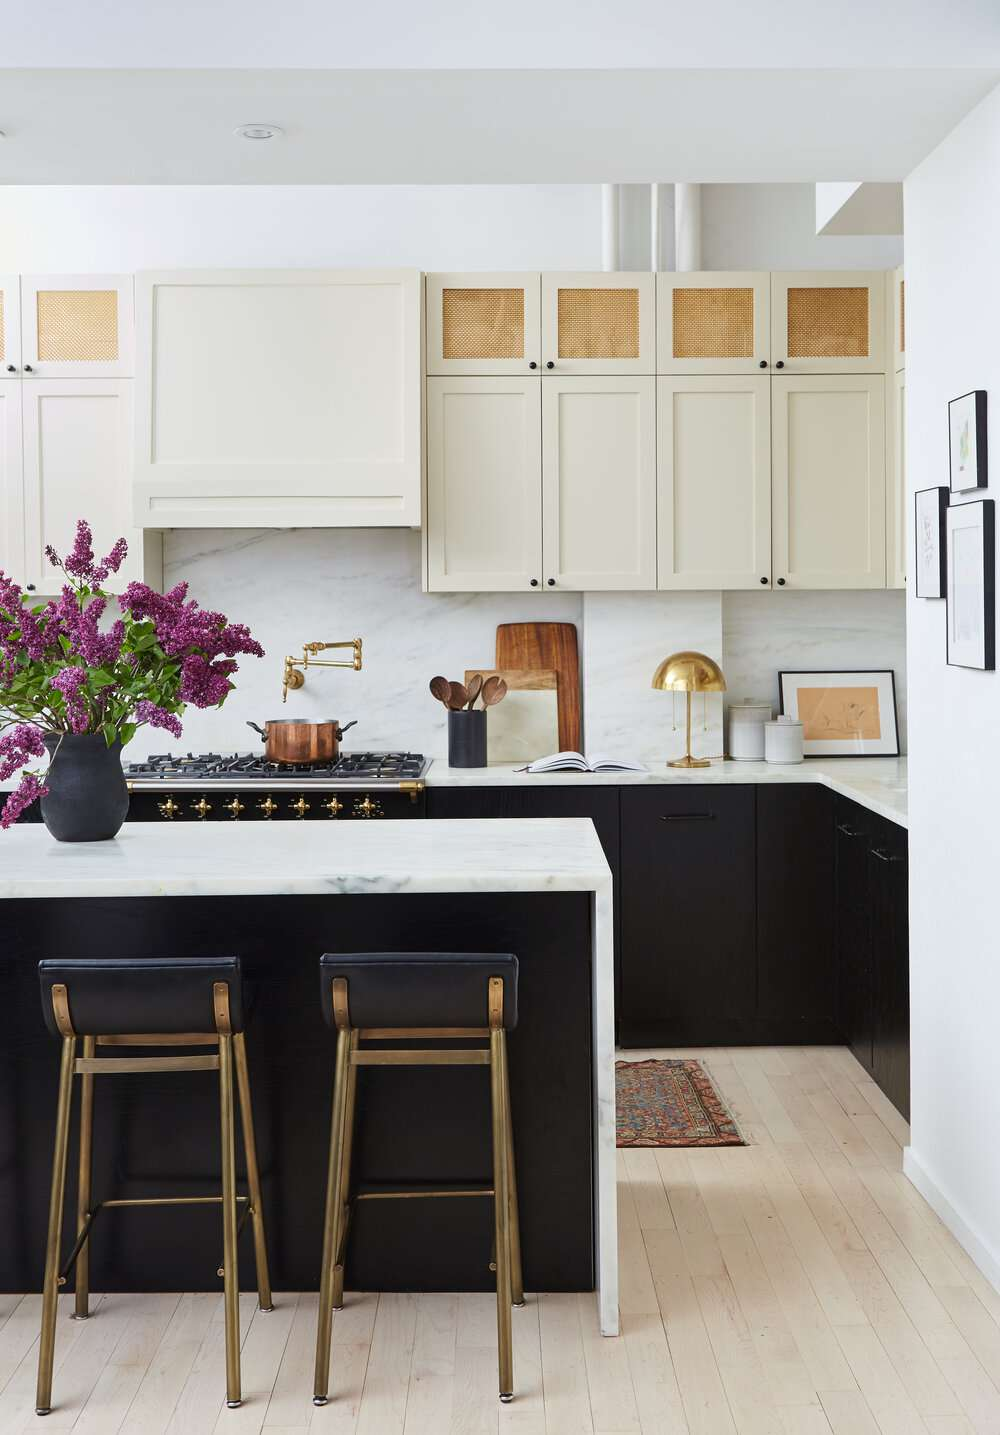 A kitchen decorated with rustic cooking utensils and some more contemporary fixtures